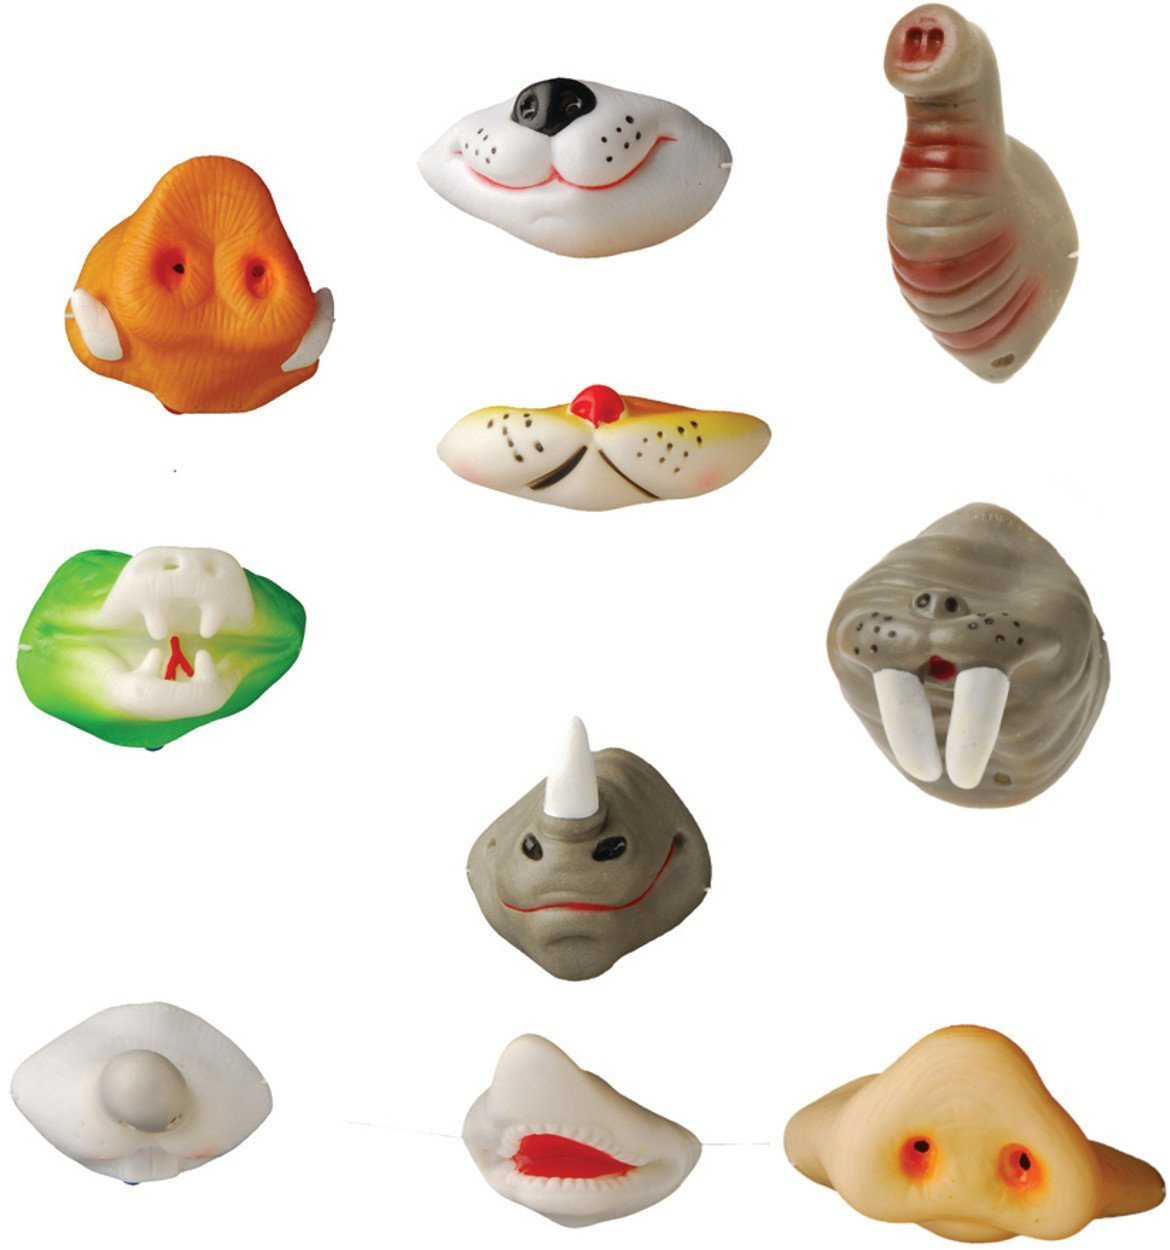 Assorted Animal Noses 24 Pack of Animal Series Nose Masks